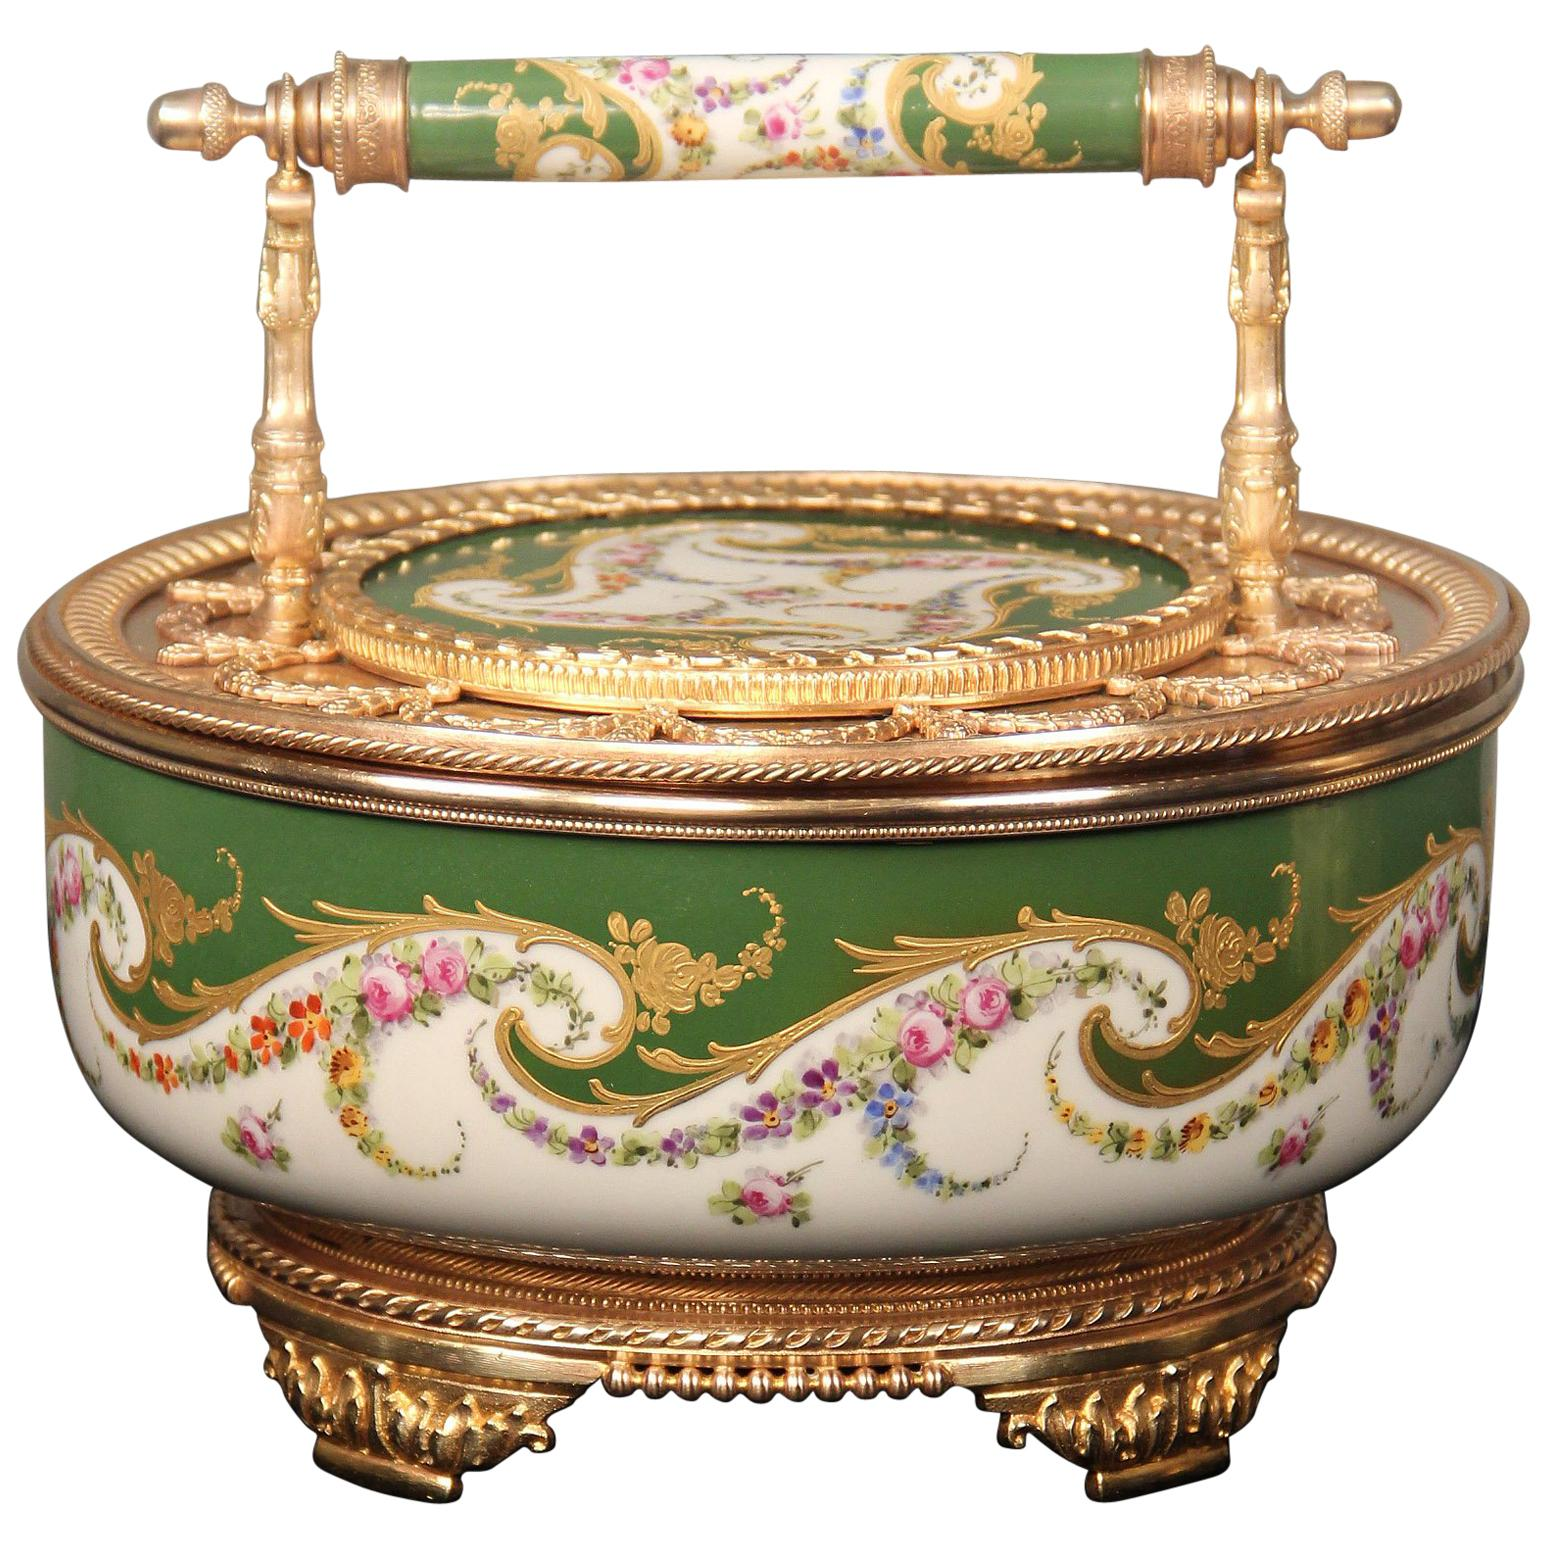 Beautiful 19th Century Gilt Bronze-Mounted Sèvres Style Porcelain Candy Dish